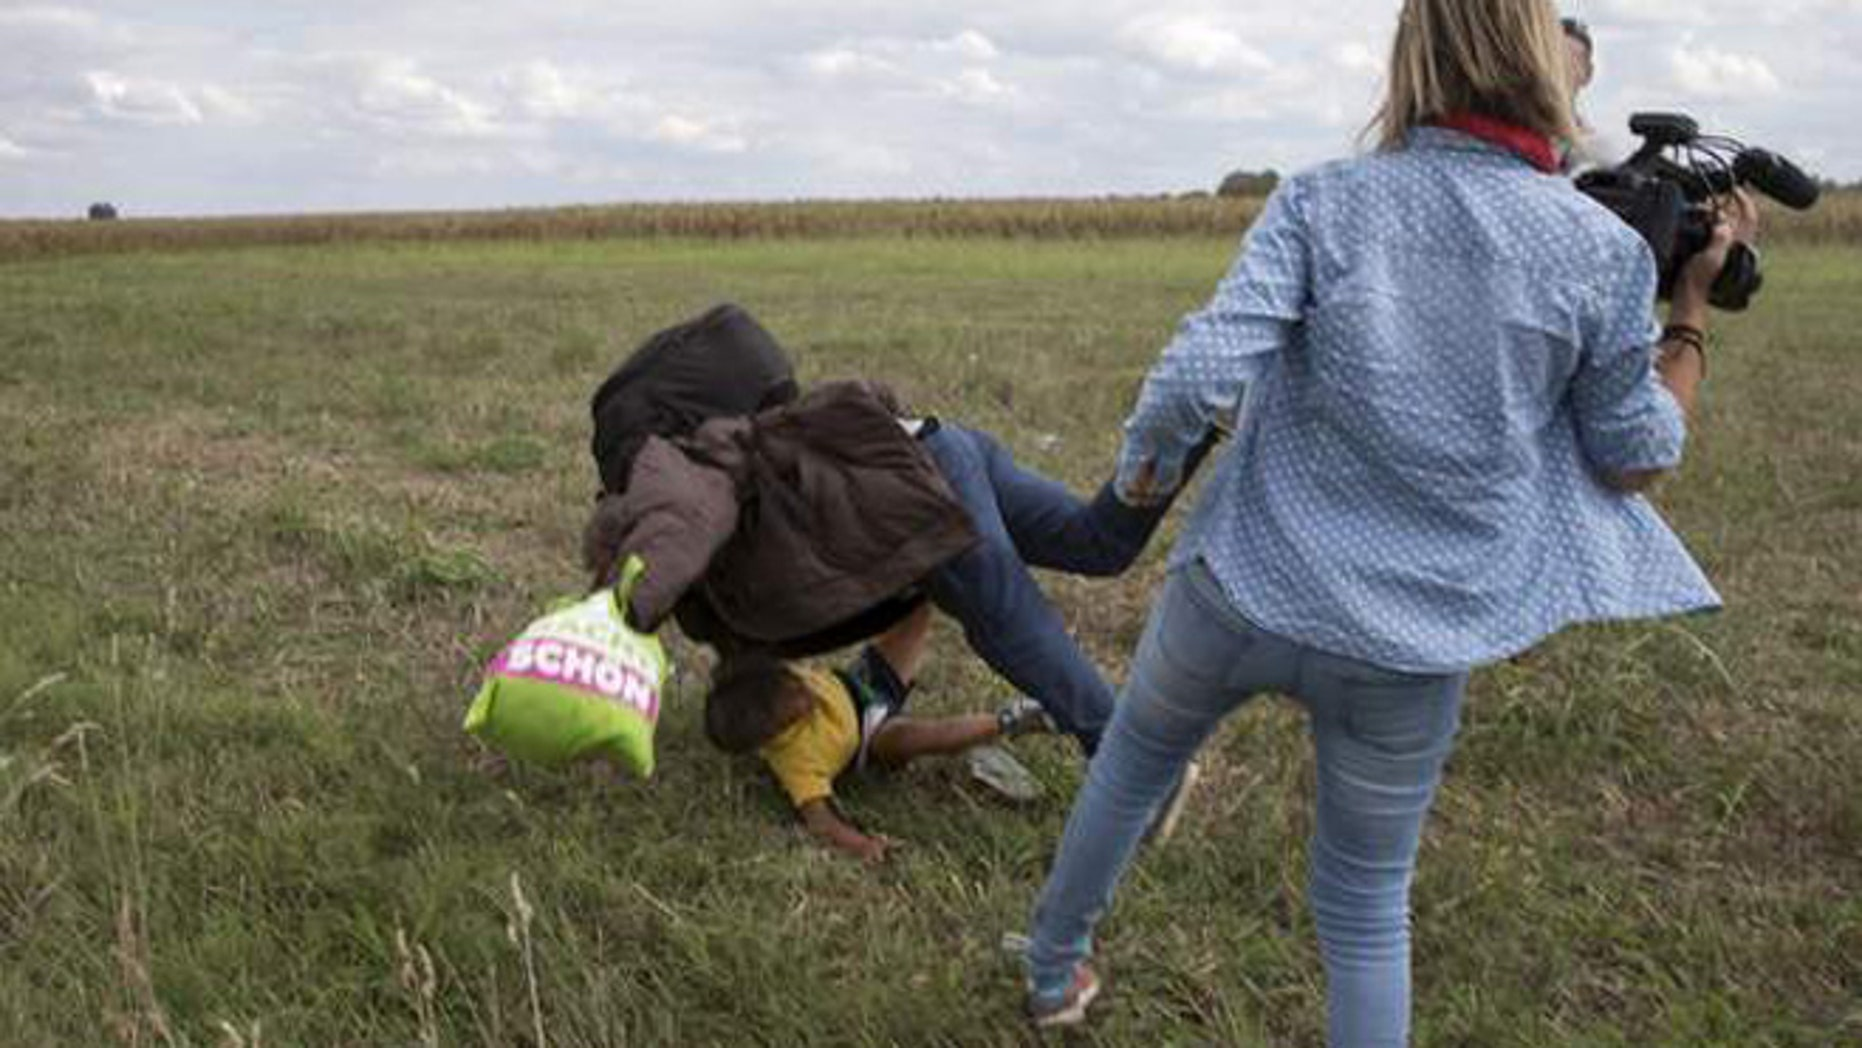 A camerawoman who was filmed tripping up a refugee says she plans to sue him.